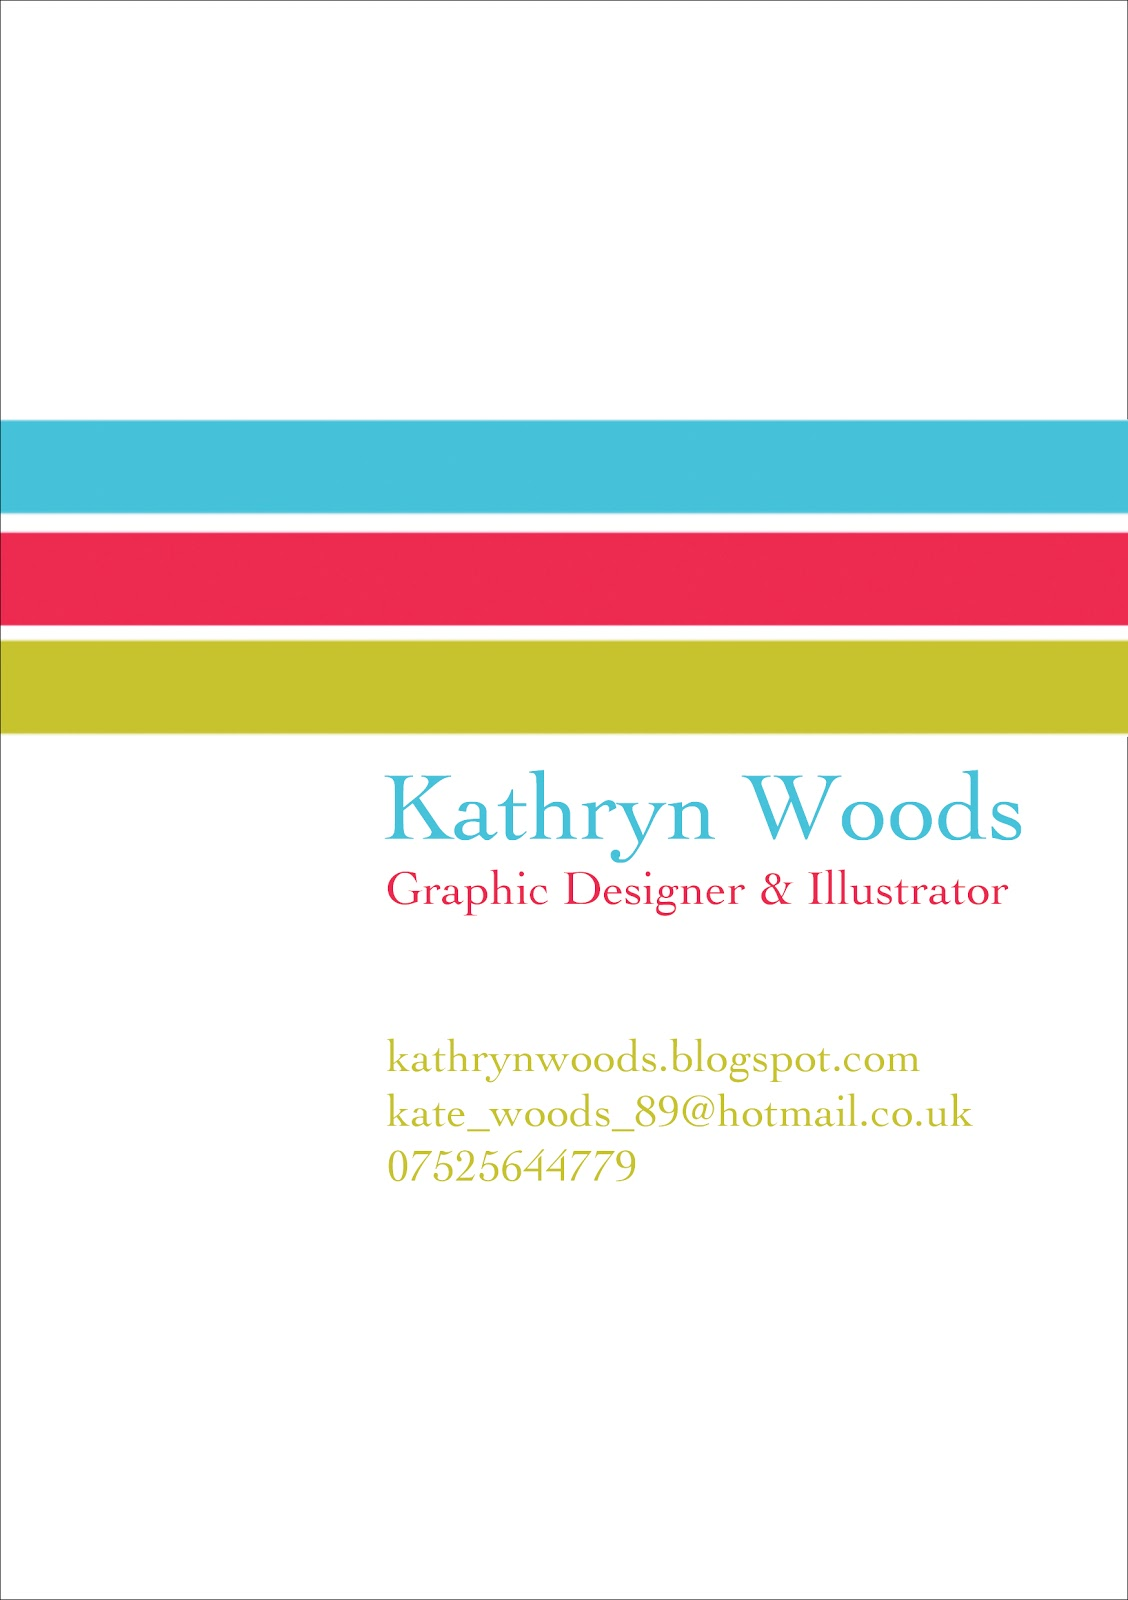 kathryn woods cv personal statement click pages for a closer look